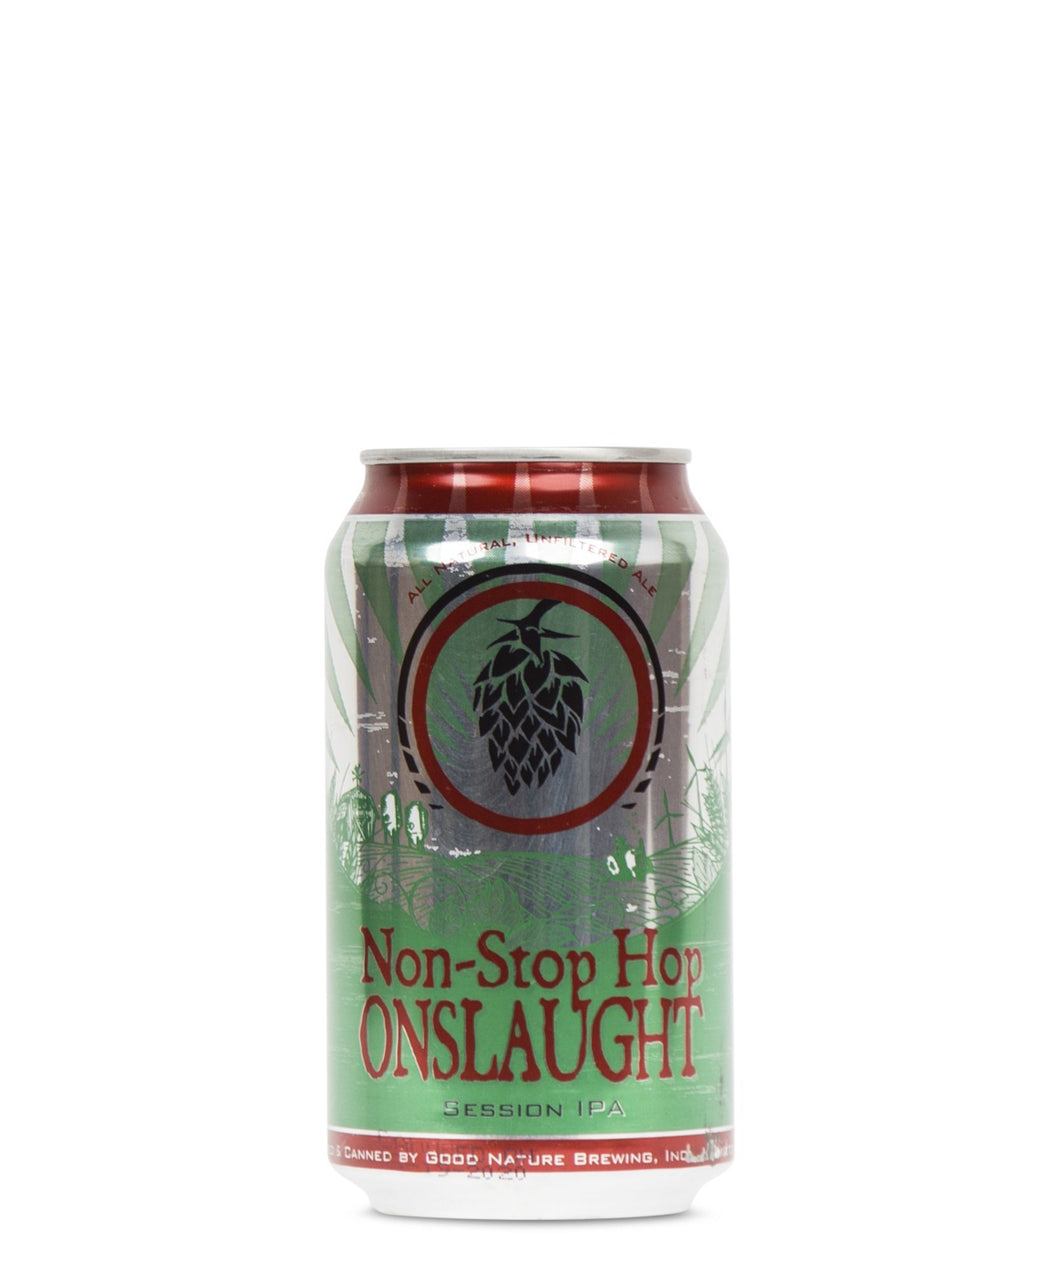 Non-Stop Hop Onslaught - Good Nature Delivered By TapRm